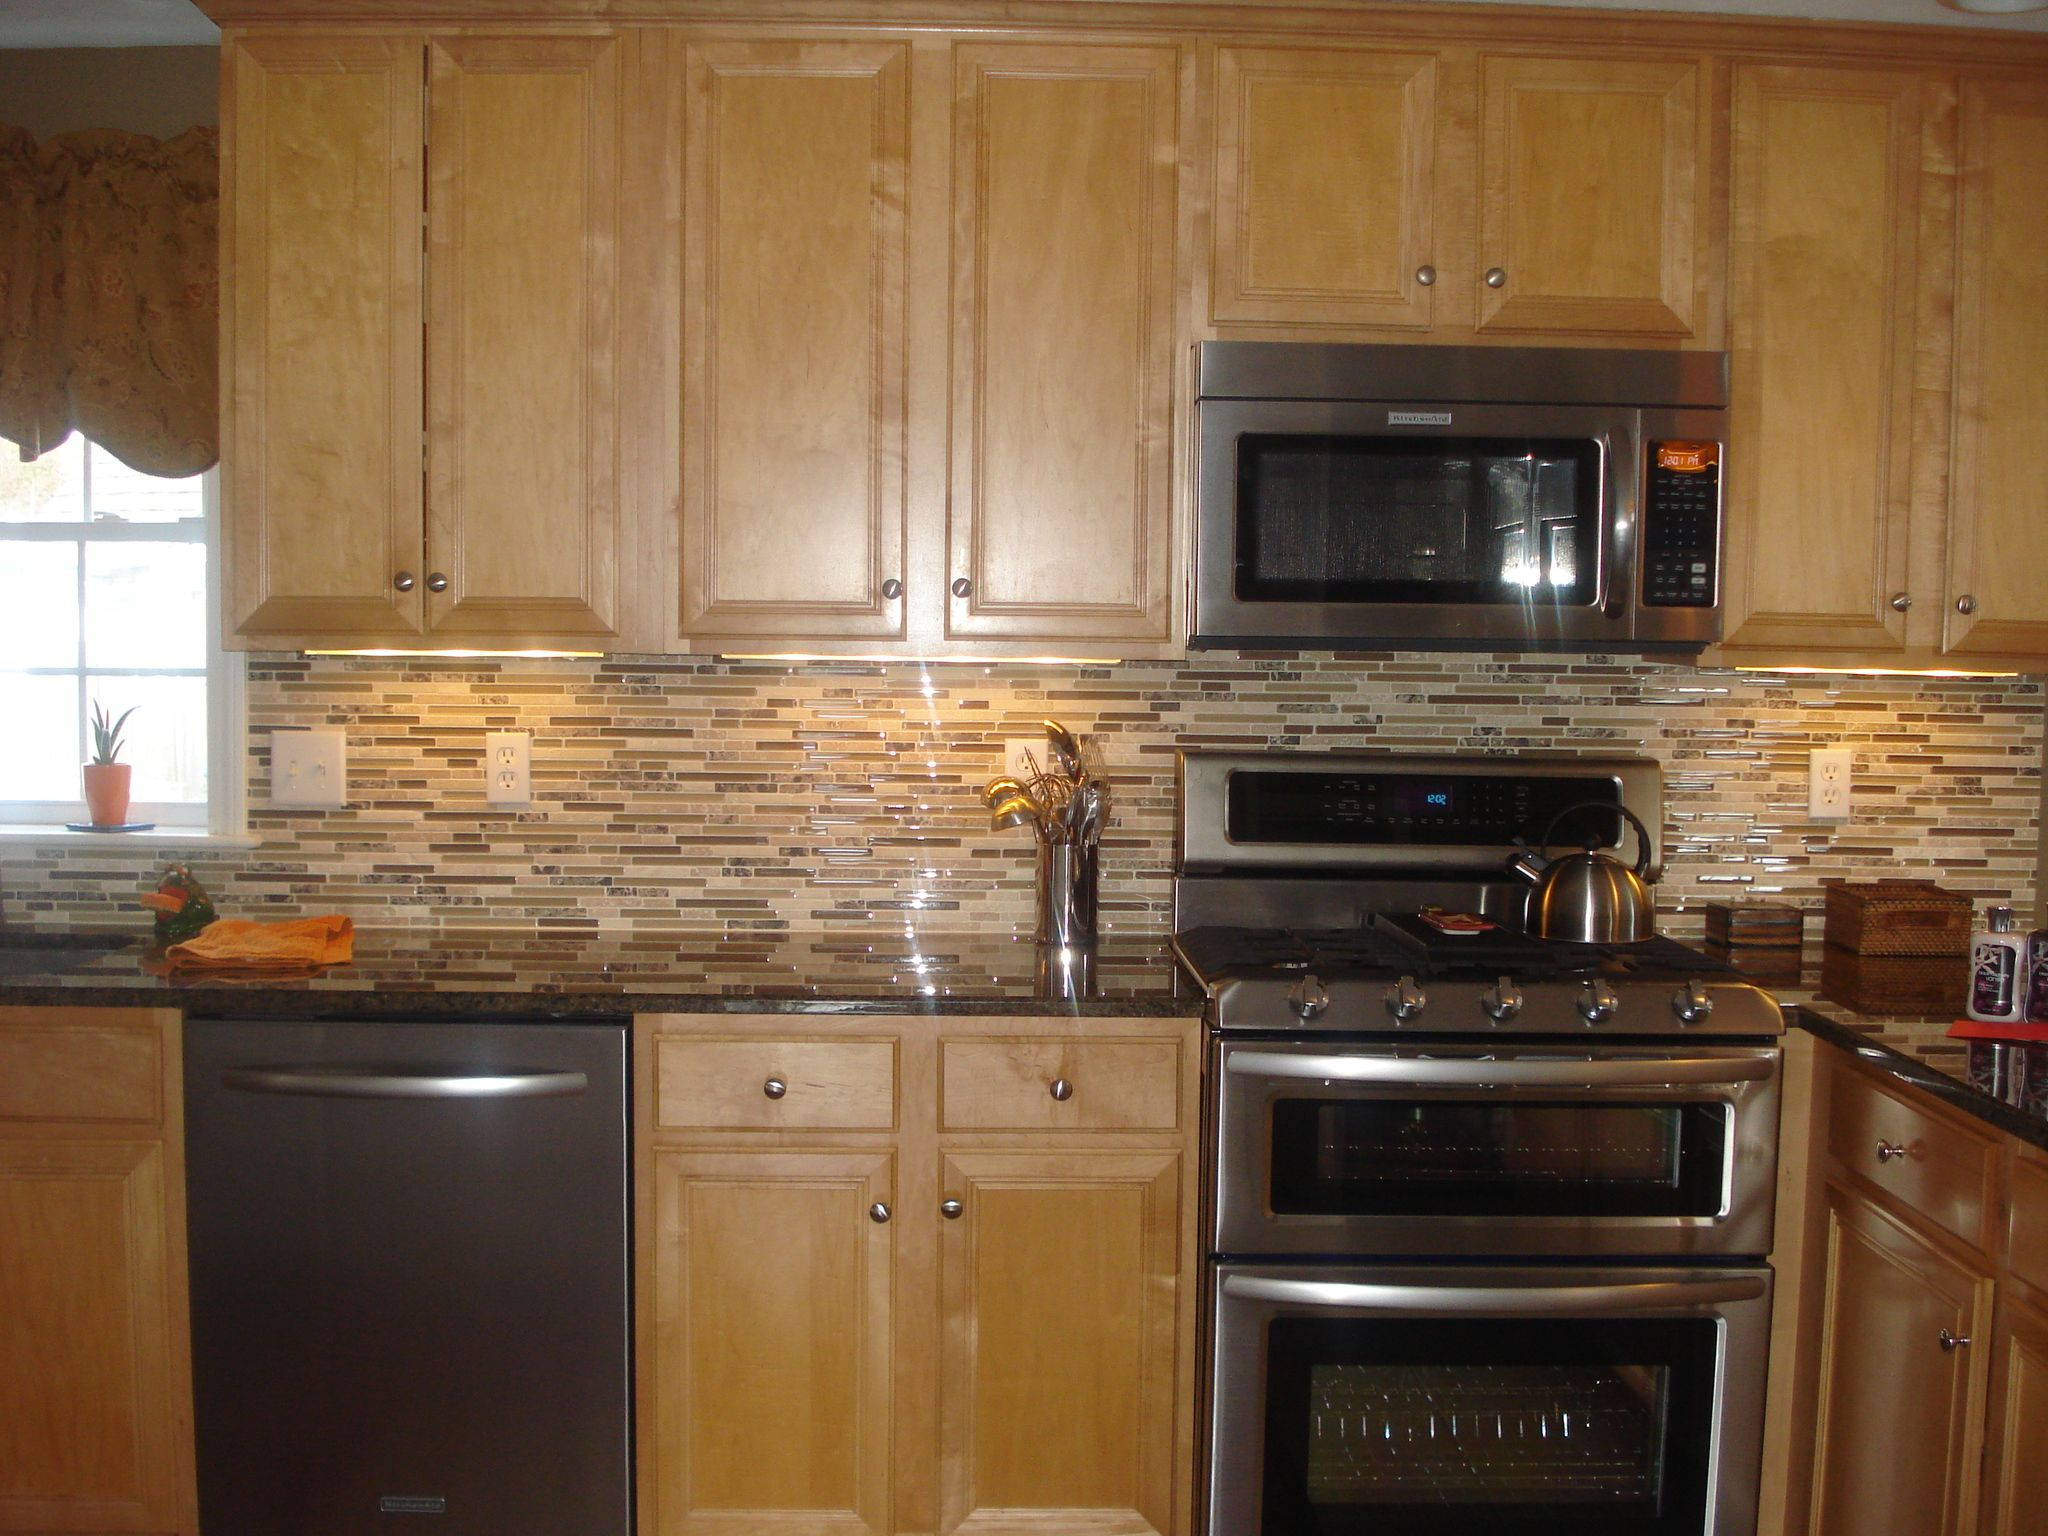 Backsplash Glass Tile Brown With Brown Cabinets  Backsplash - Brown and black kitchen designs